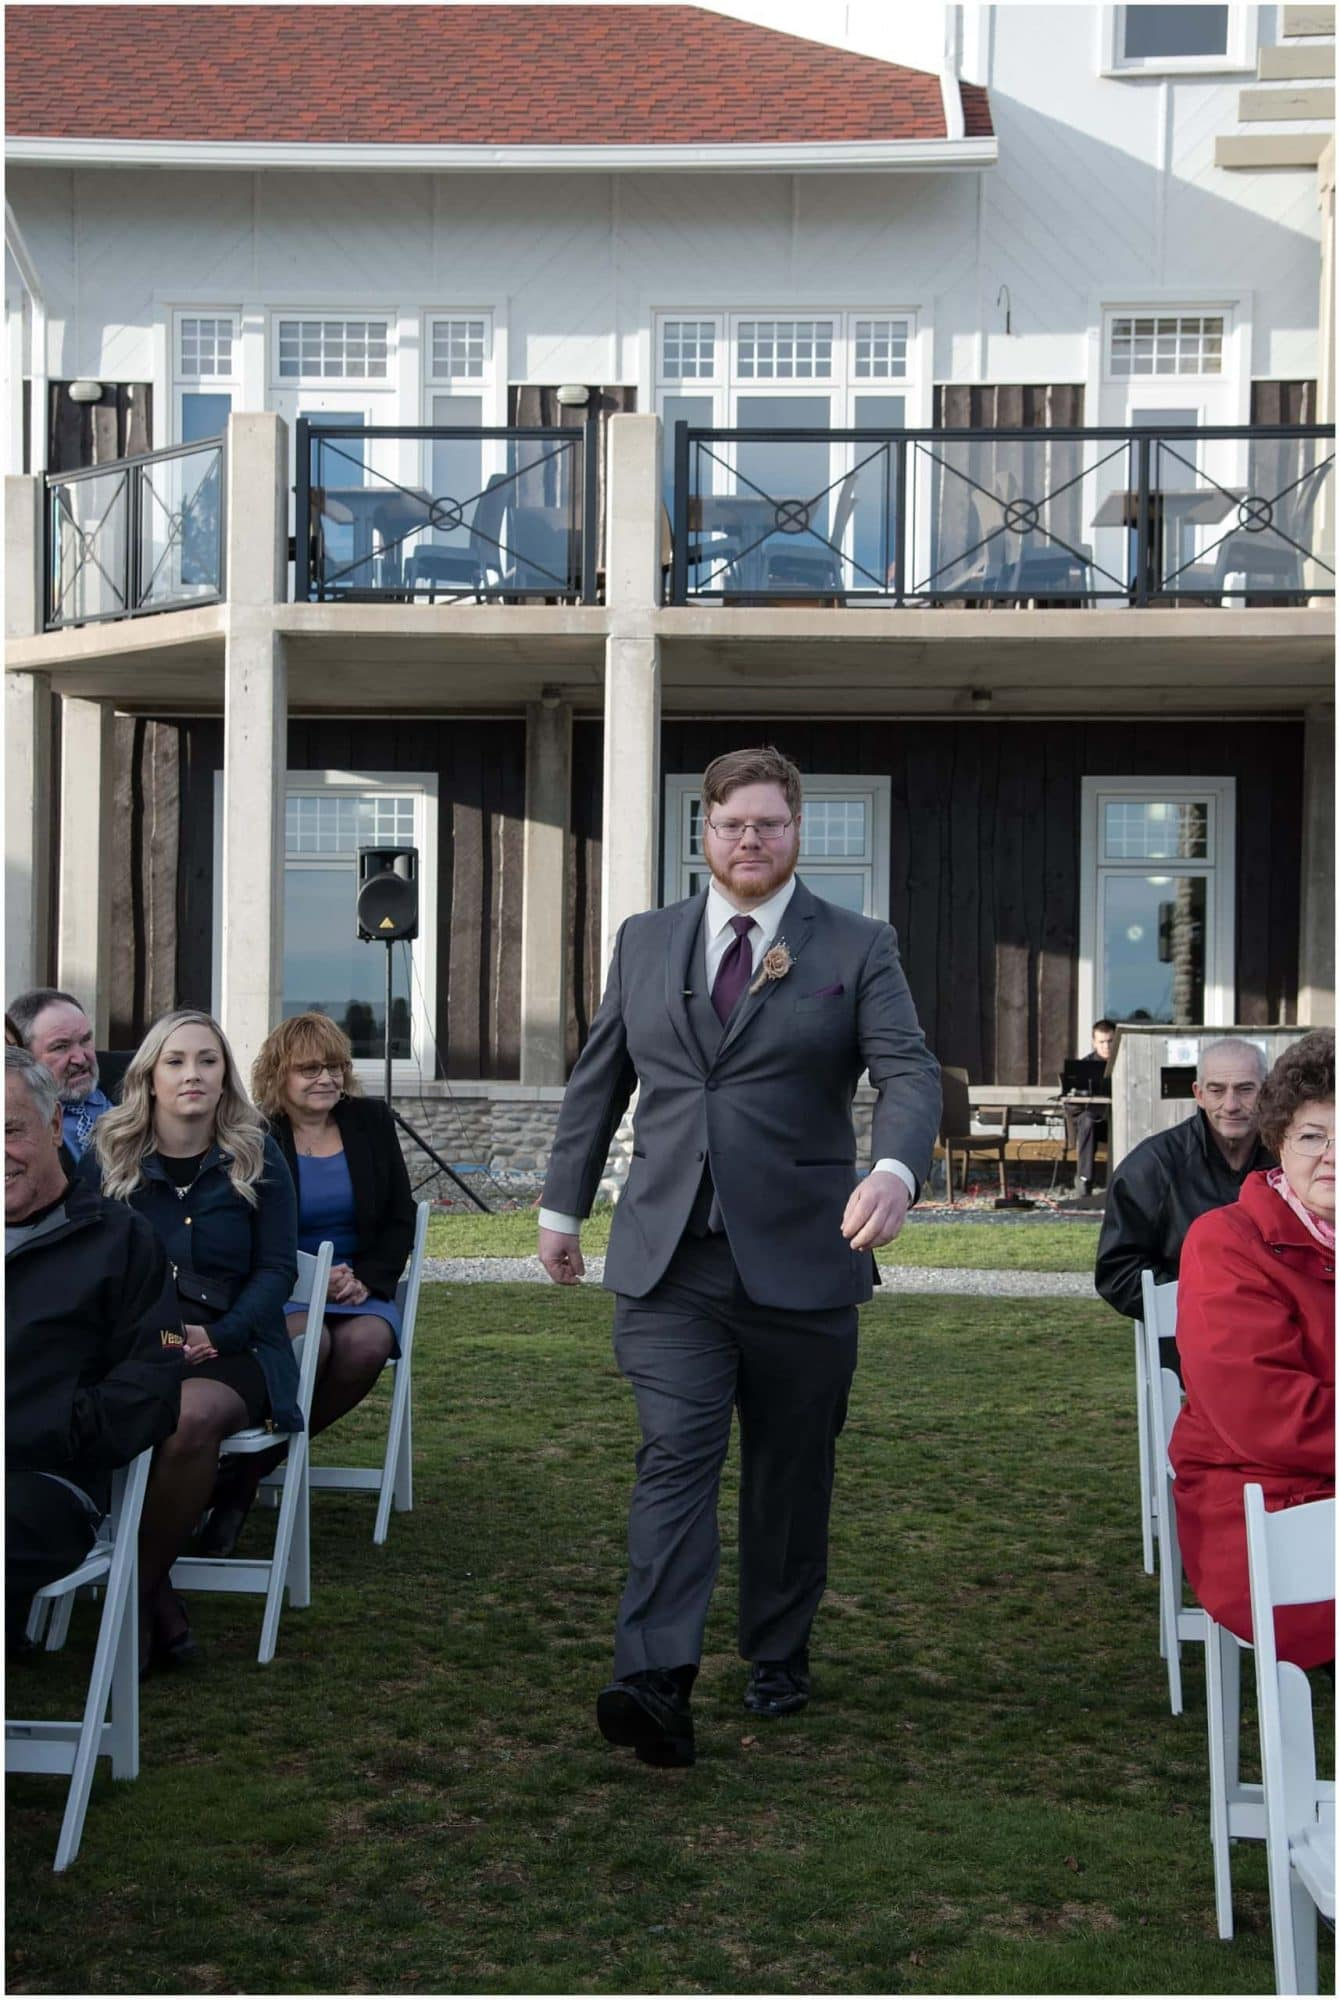 The groom walks up the aisle to the alter for his wedding ceremony at White Point Beach Resort in NS.